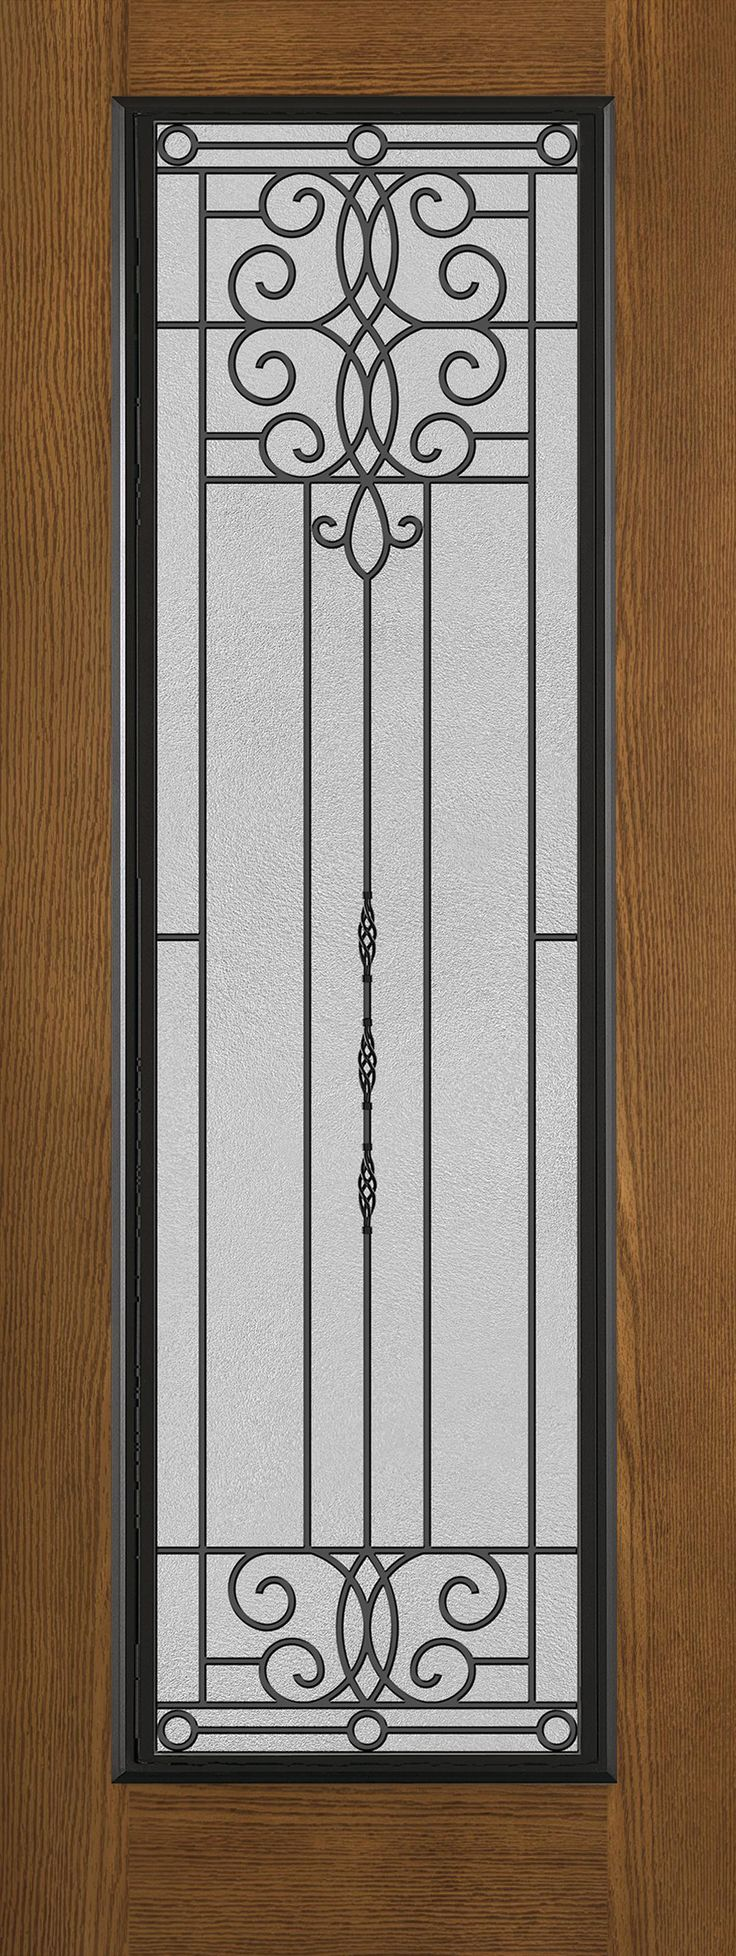 7 Best Iron Grill Mahogany Wood Doors Images On Pinterest